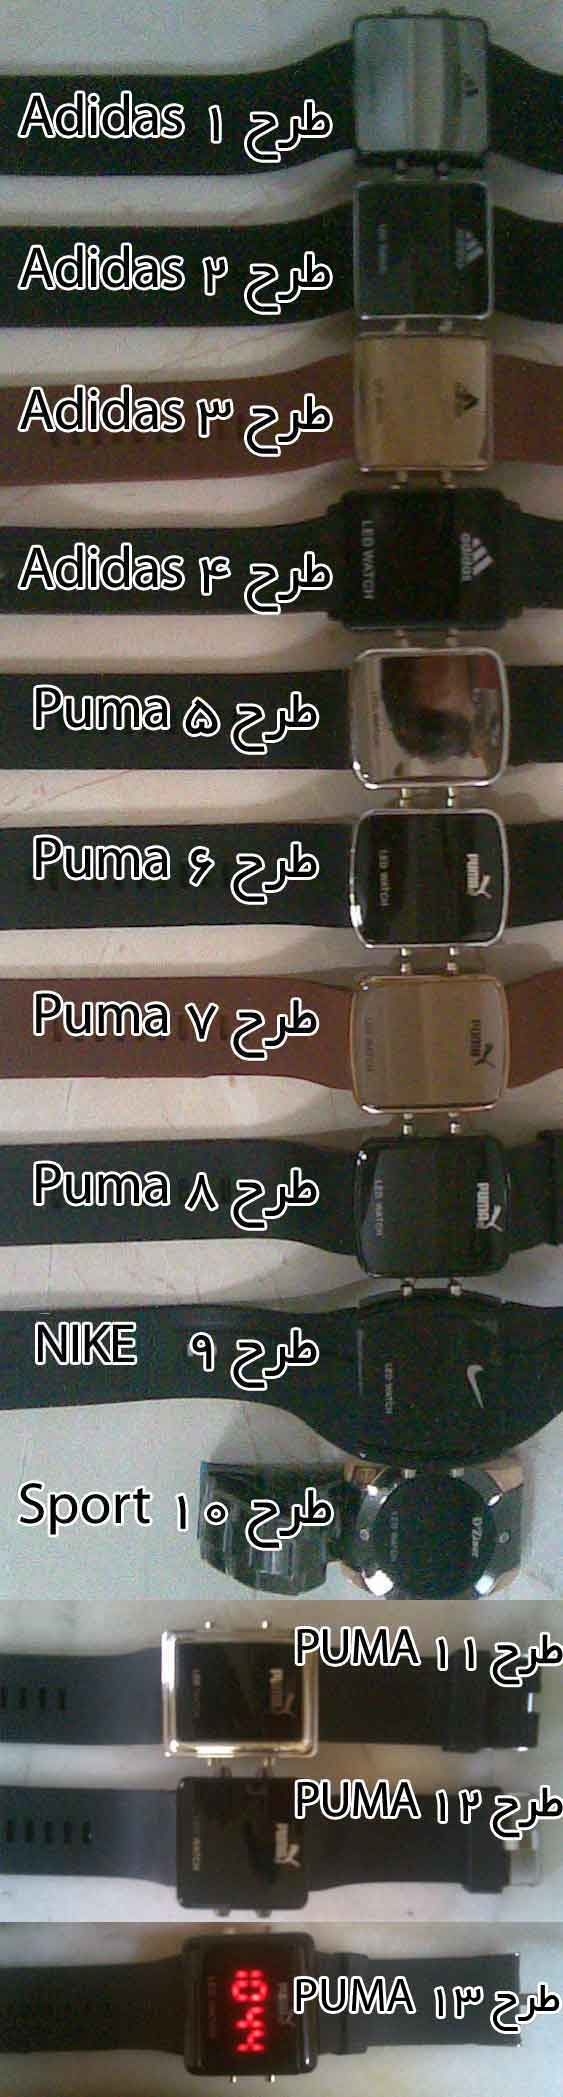 saat led    LED        ...(Nike Puma Adidas)   